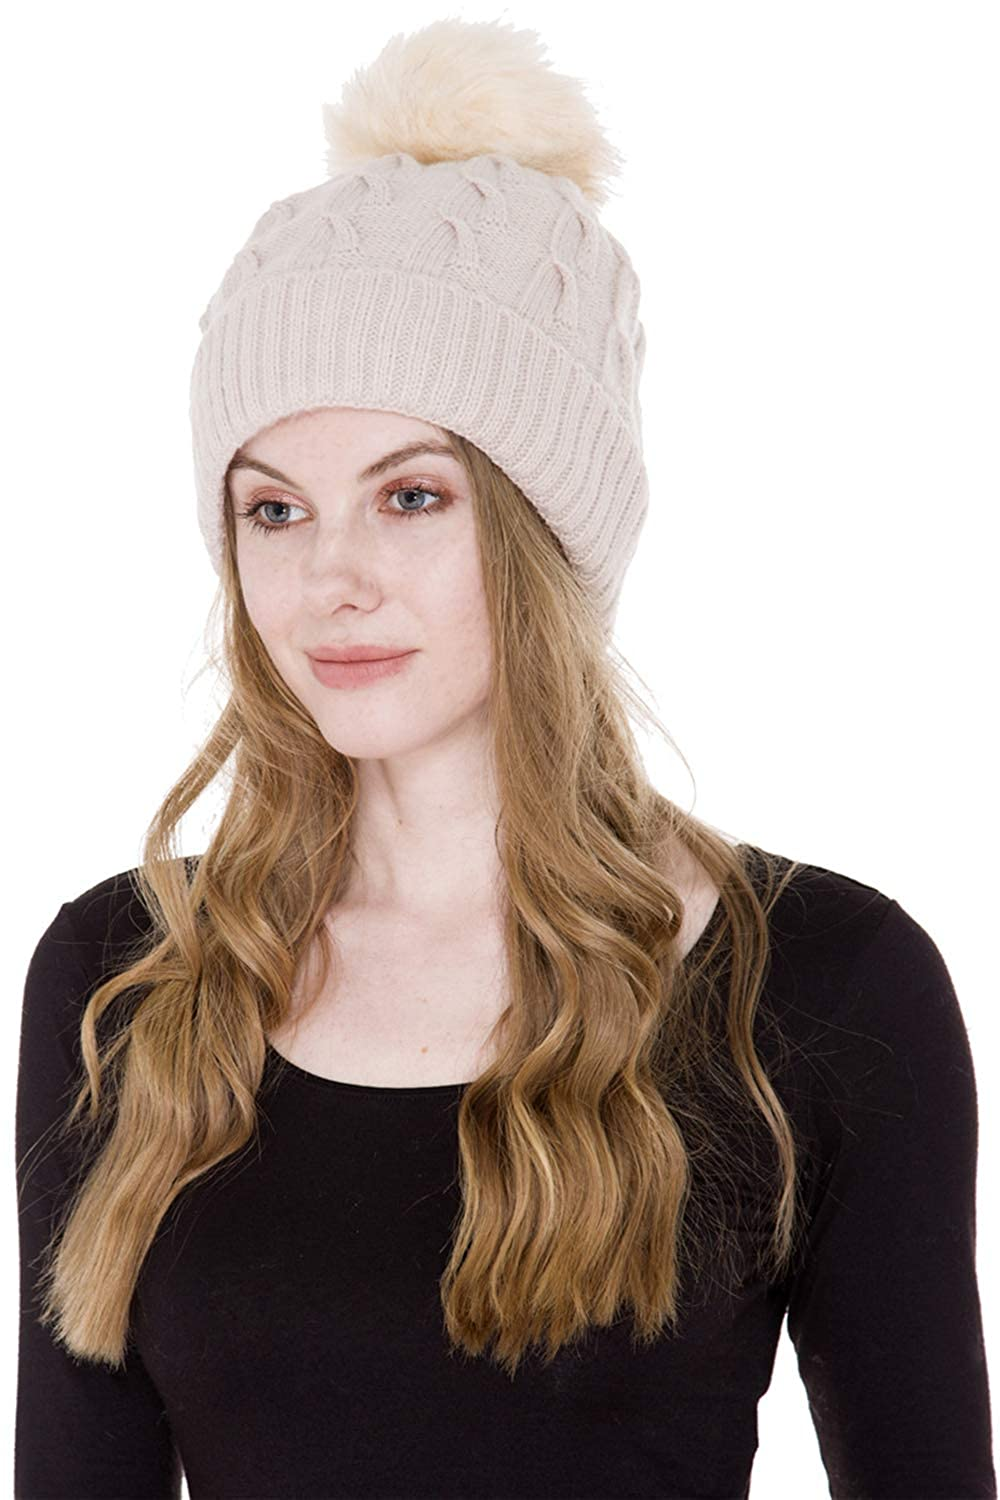 Janice Apparel Women s Winter Plain Color Cable Knit Beanie Hat Faux Fur  Pom Pom and Sherpa Lined (Beige) at Amazon Women s Clothing store  f23c75157